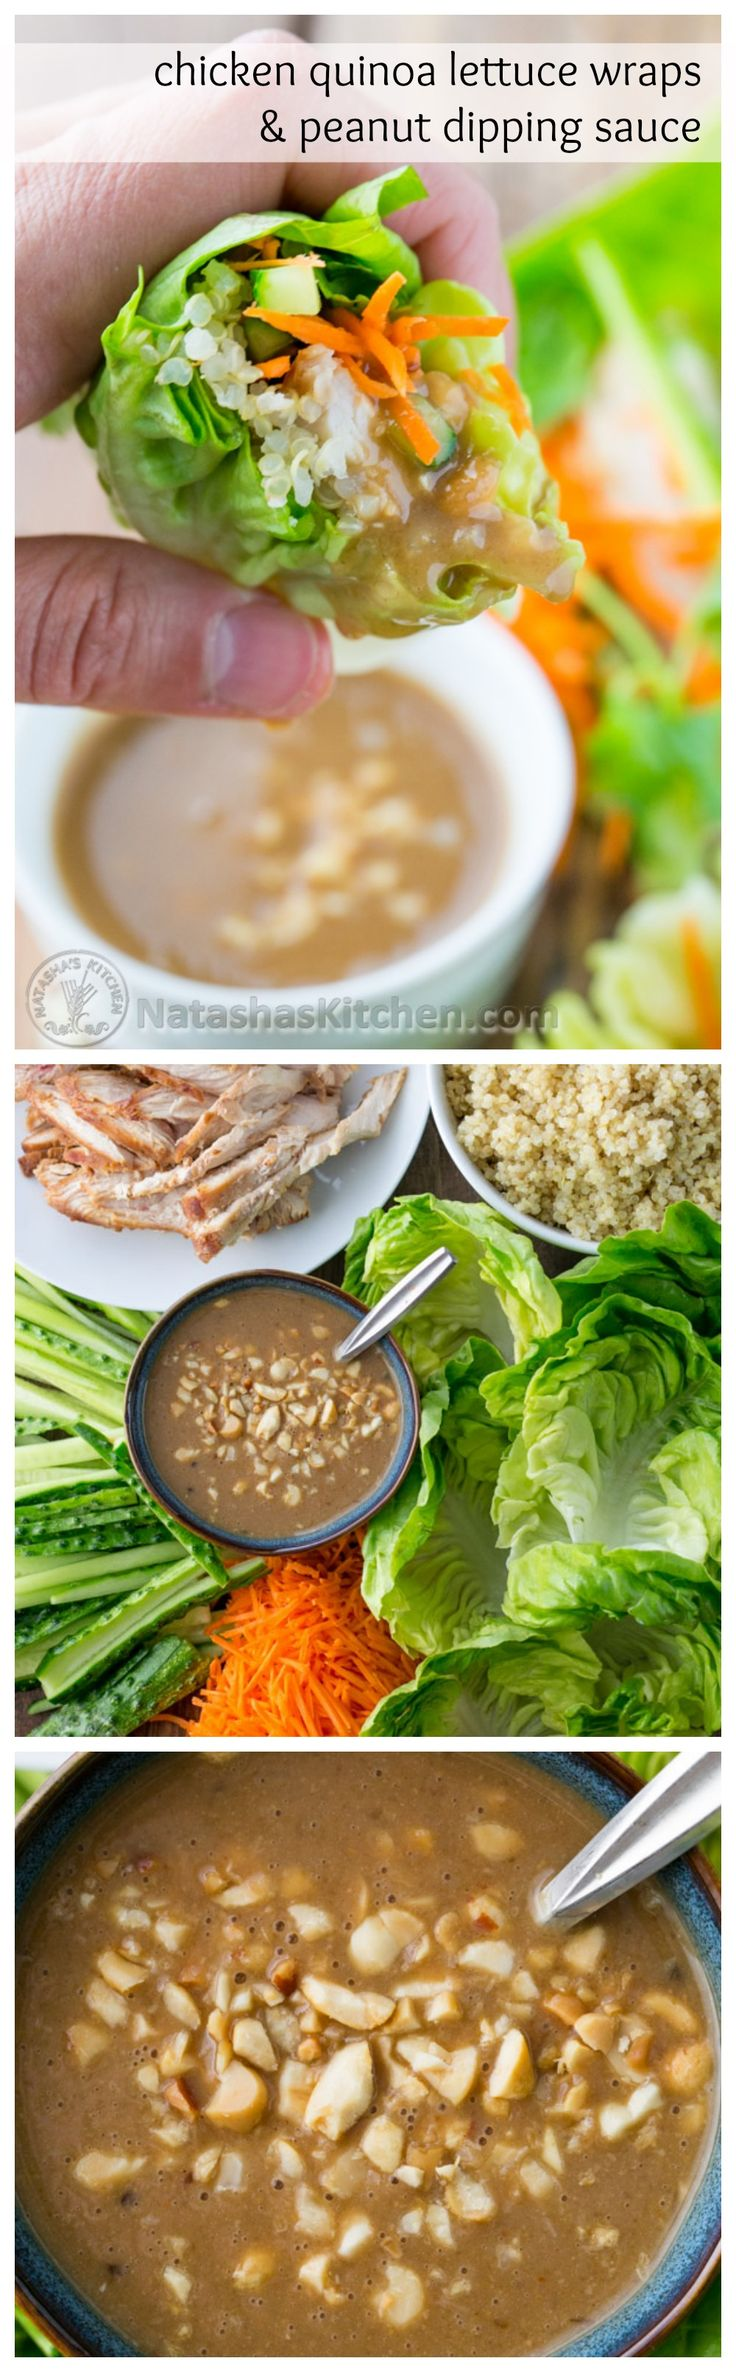 Chicken Quinoa Lettuce Wraps with Peanut Sauce - You'll love these! P.S. this peanut sauce is boss. You'll want to hang on to this recipe!